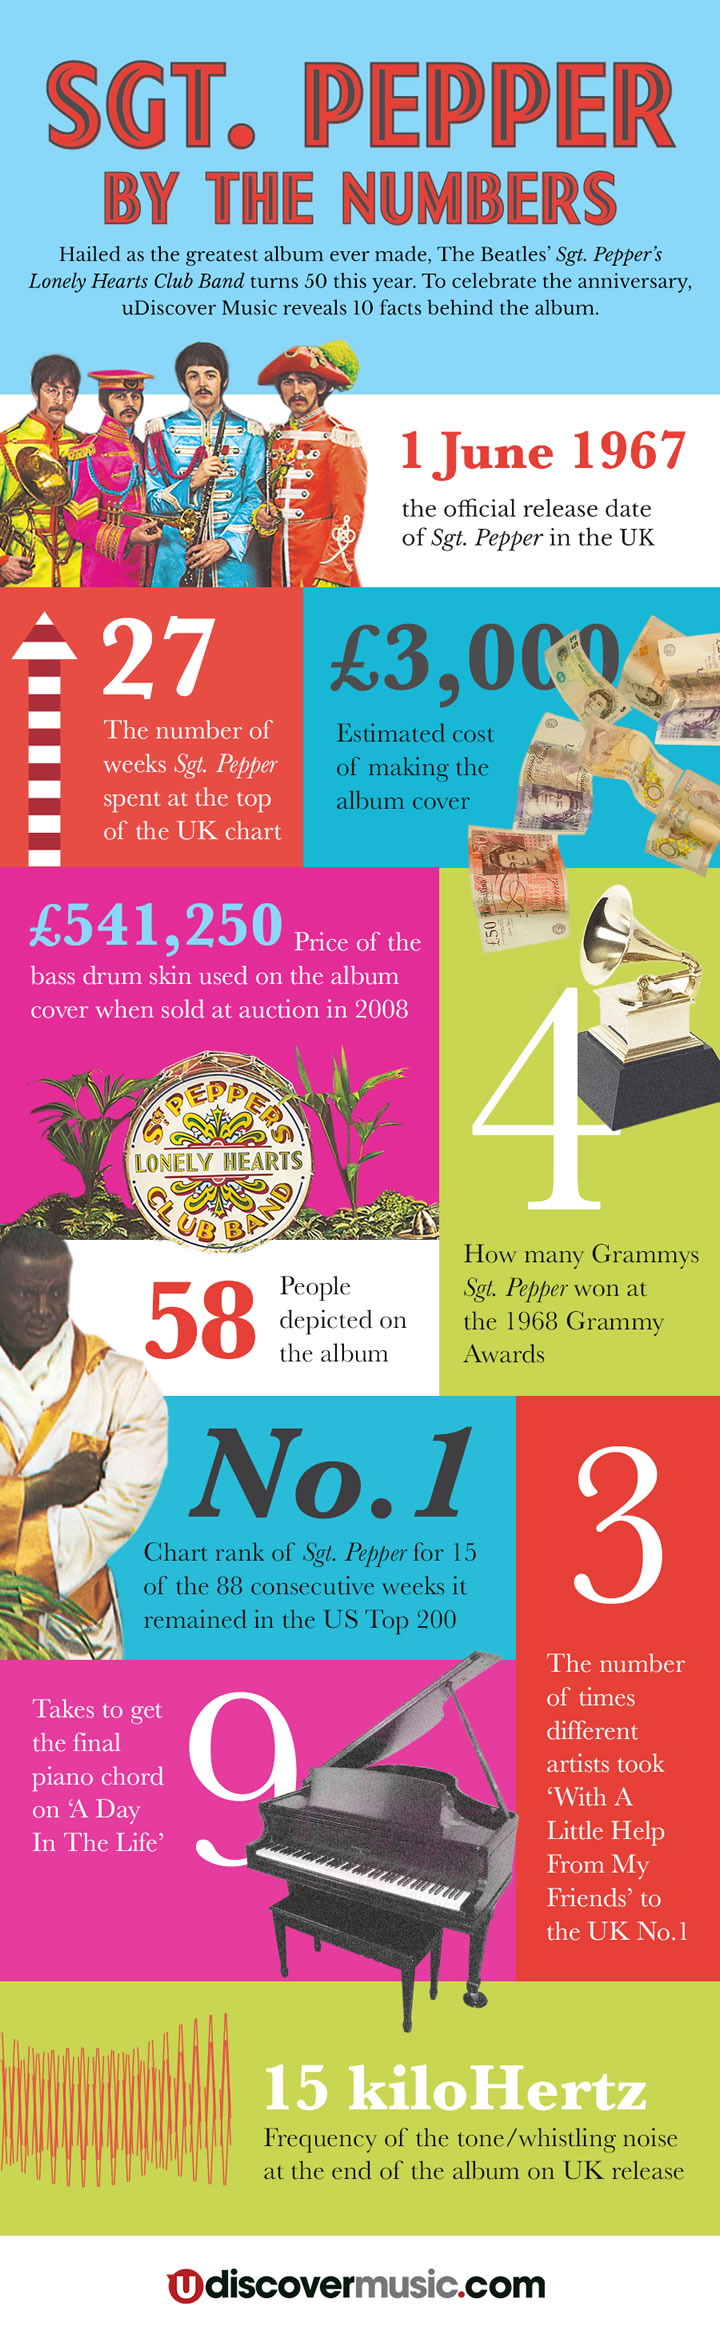 Beatles Sgt Pepper InfoGraphic